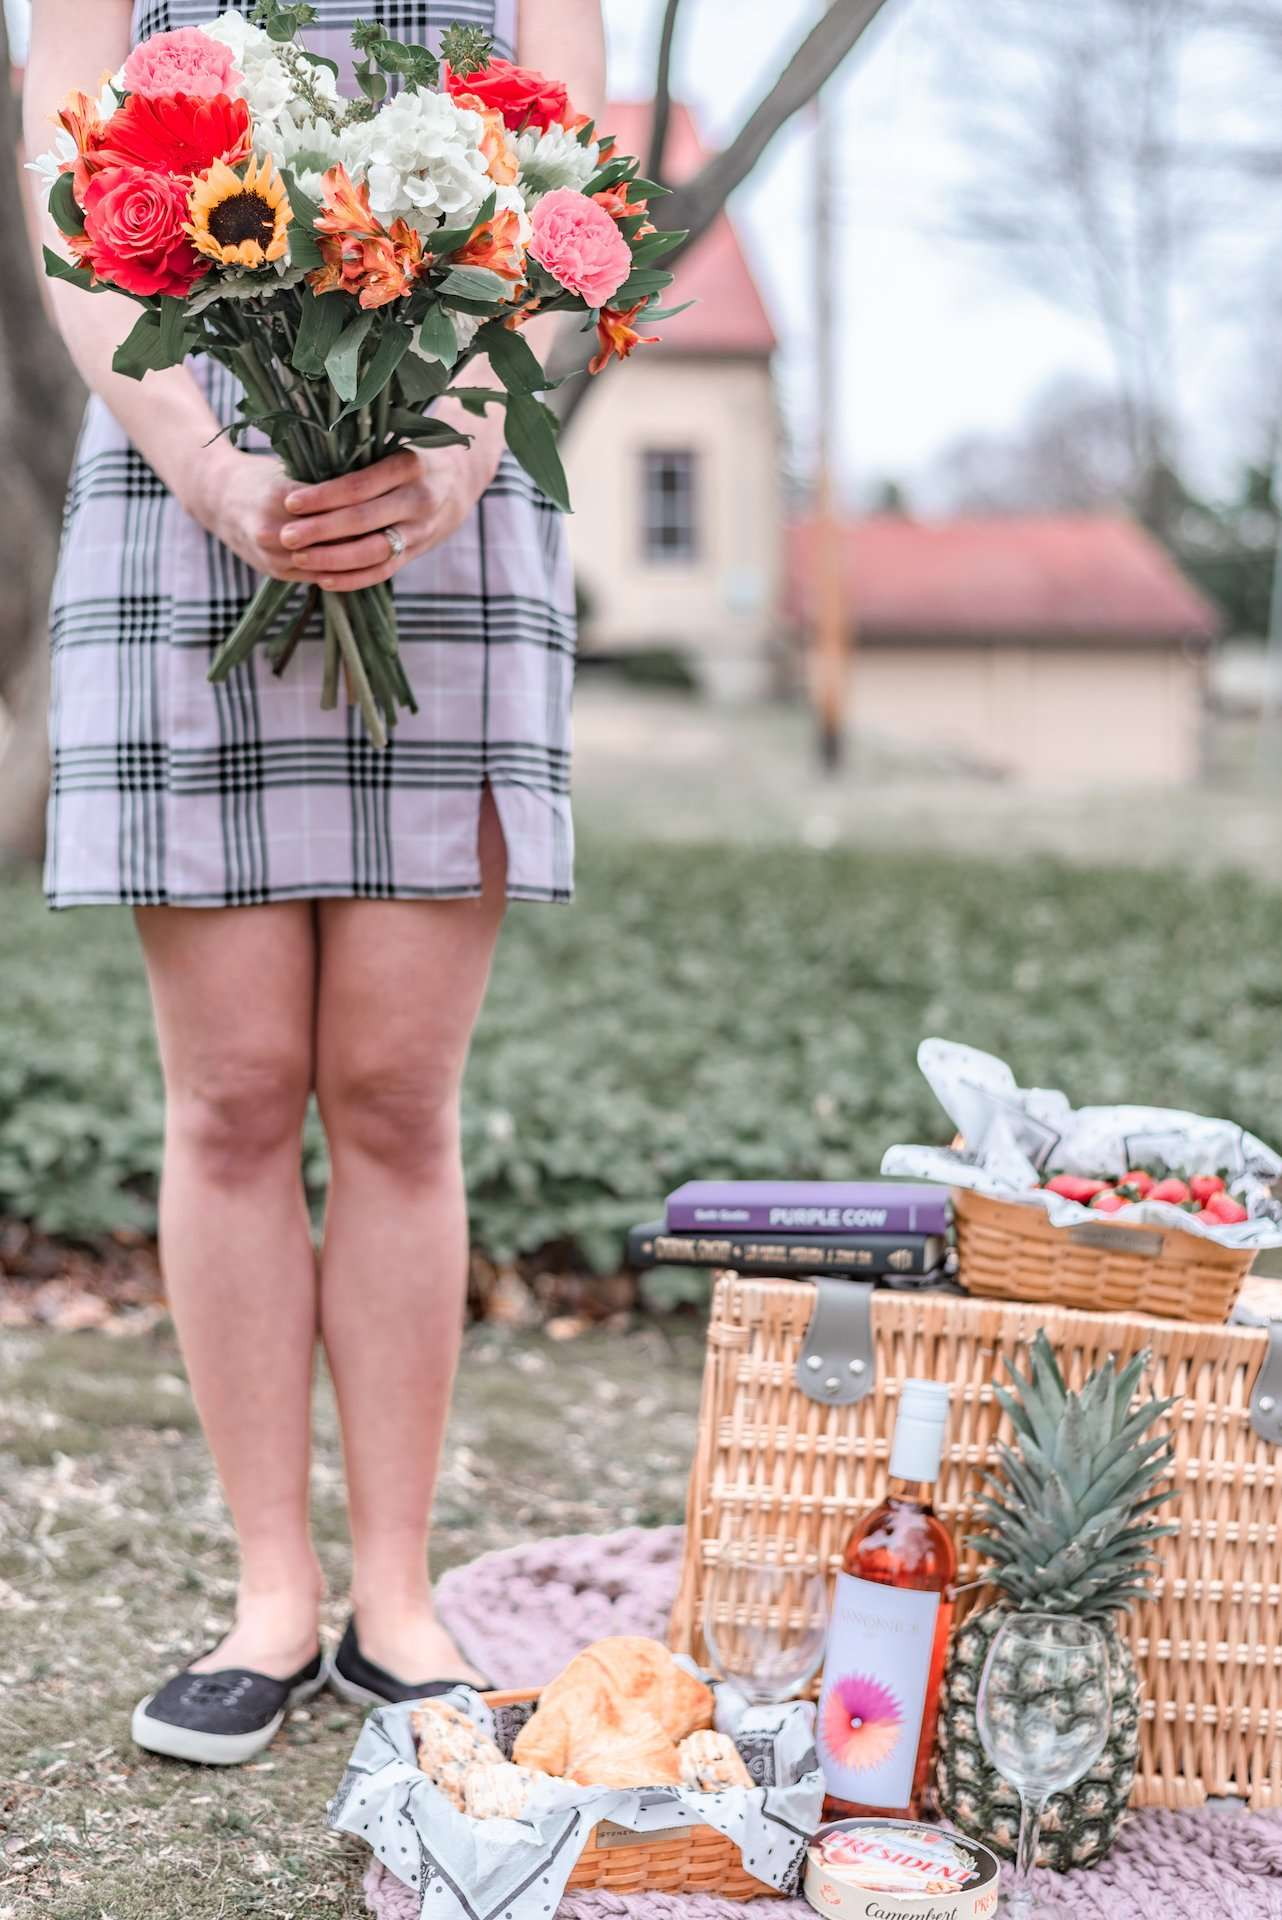 spring picnic with flowers